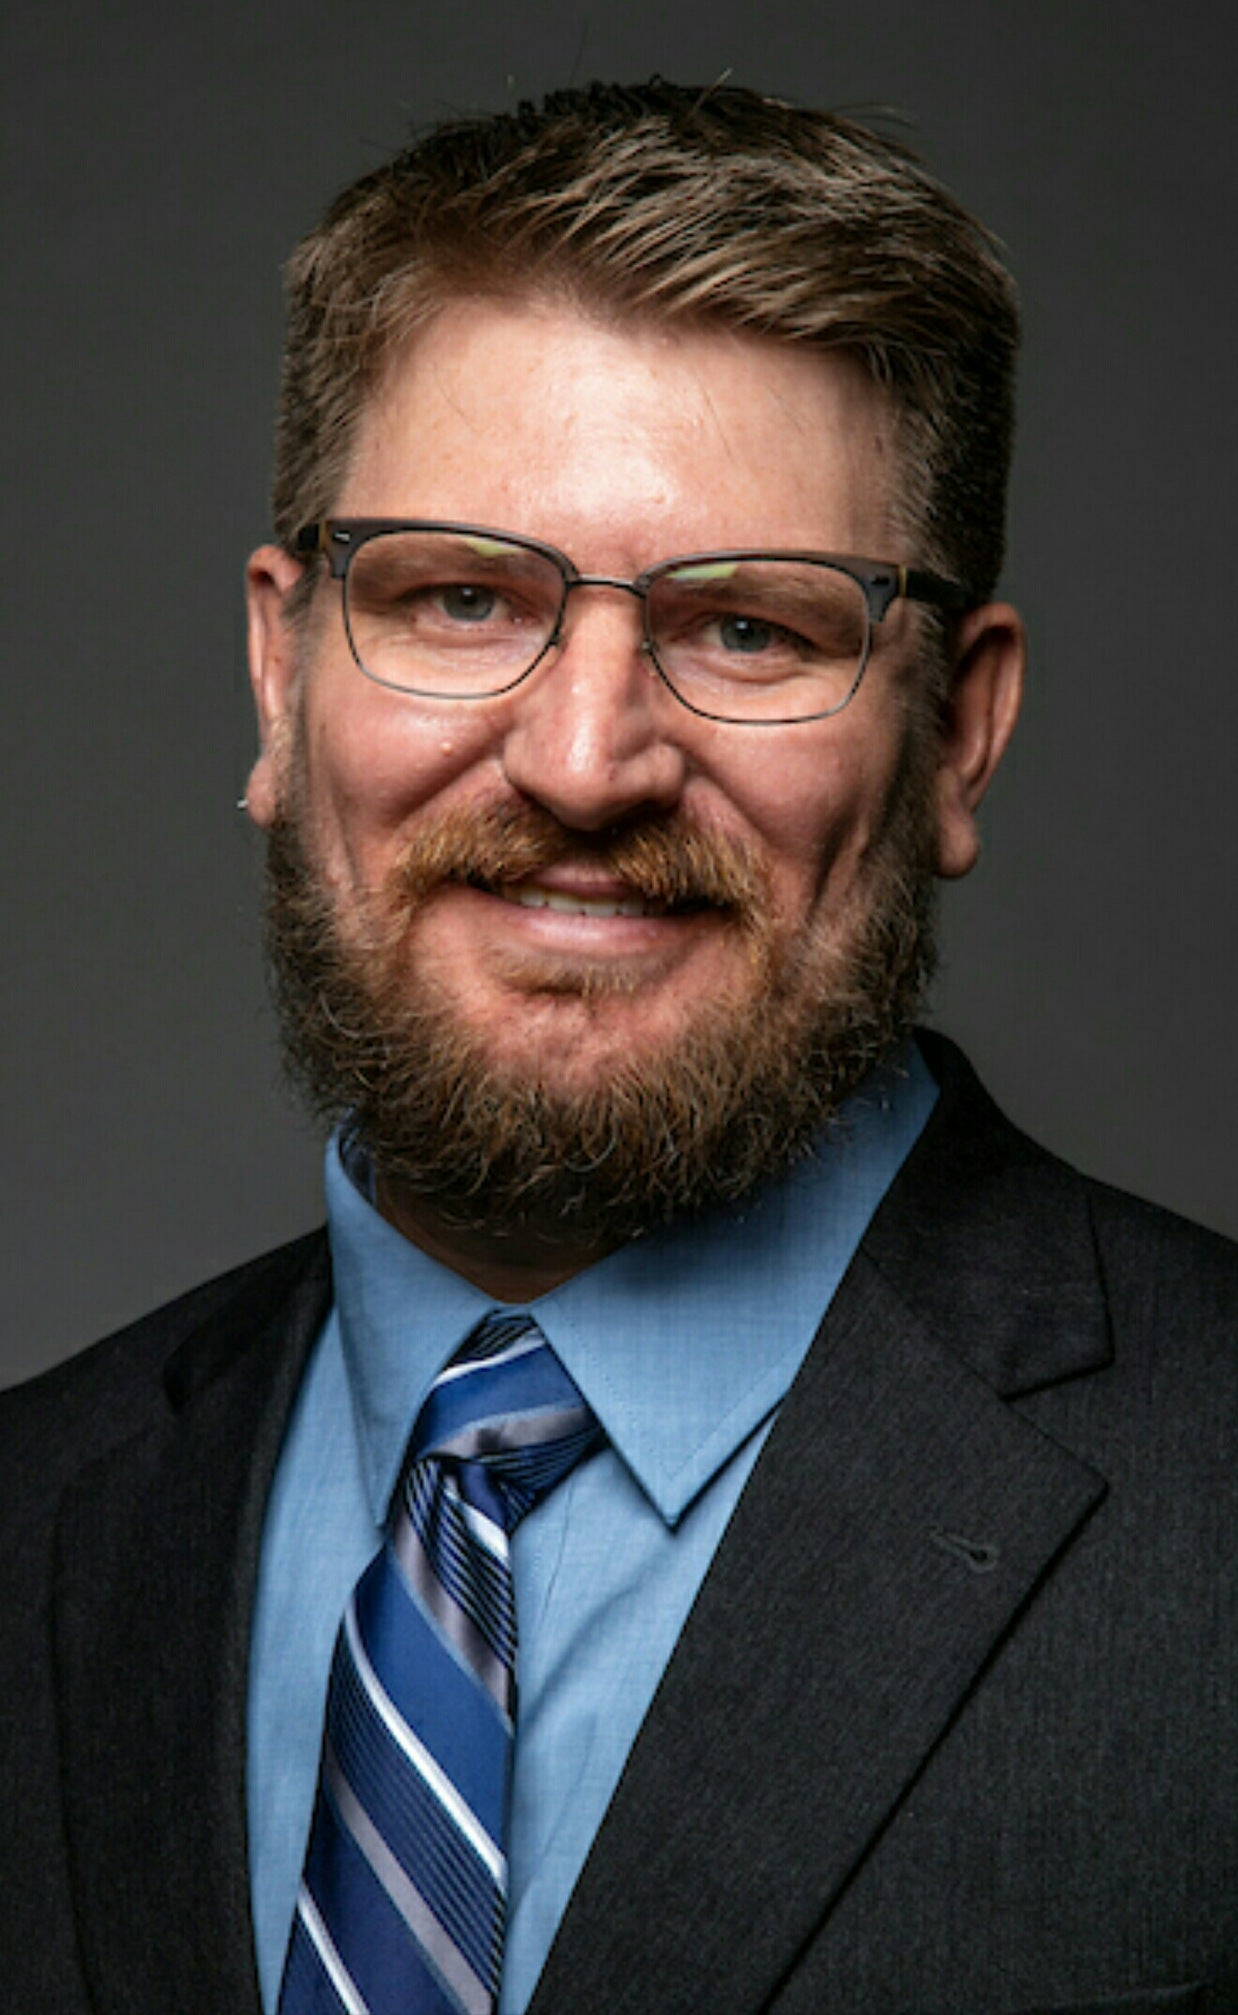 Image of Dr. Michael Ballard